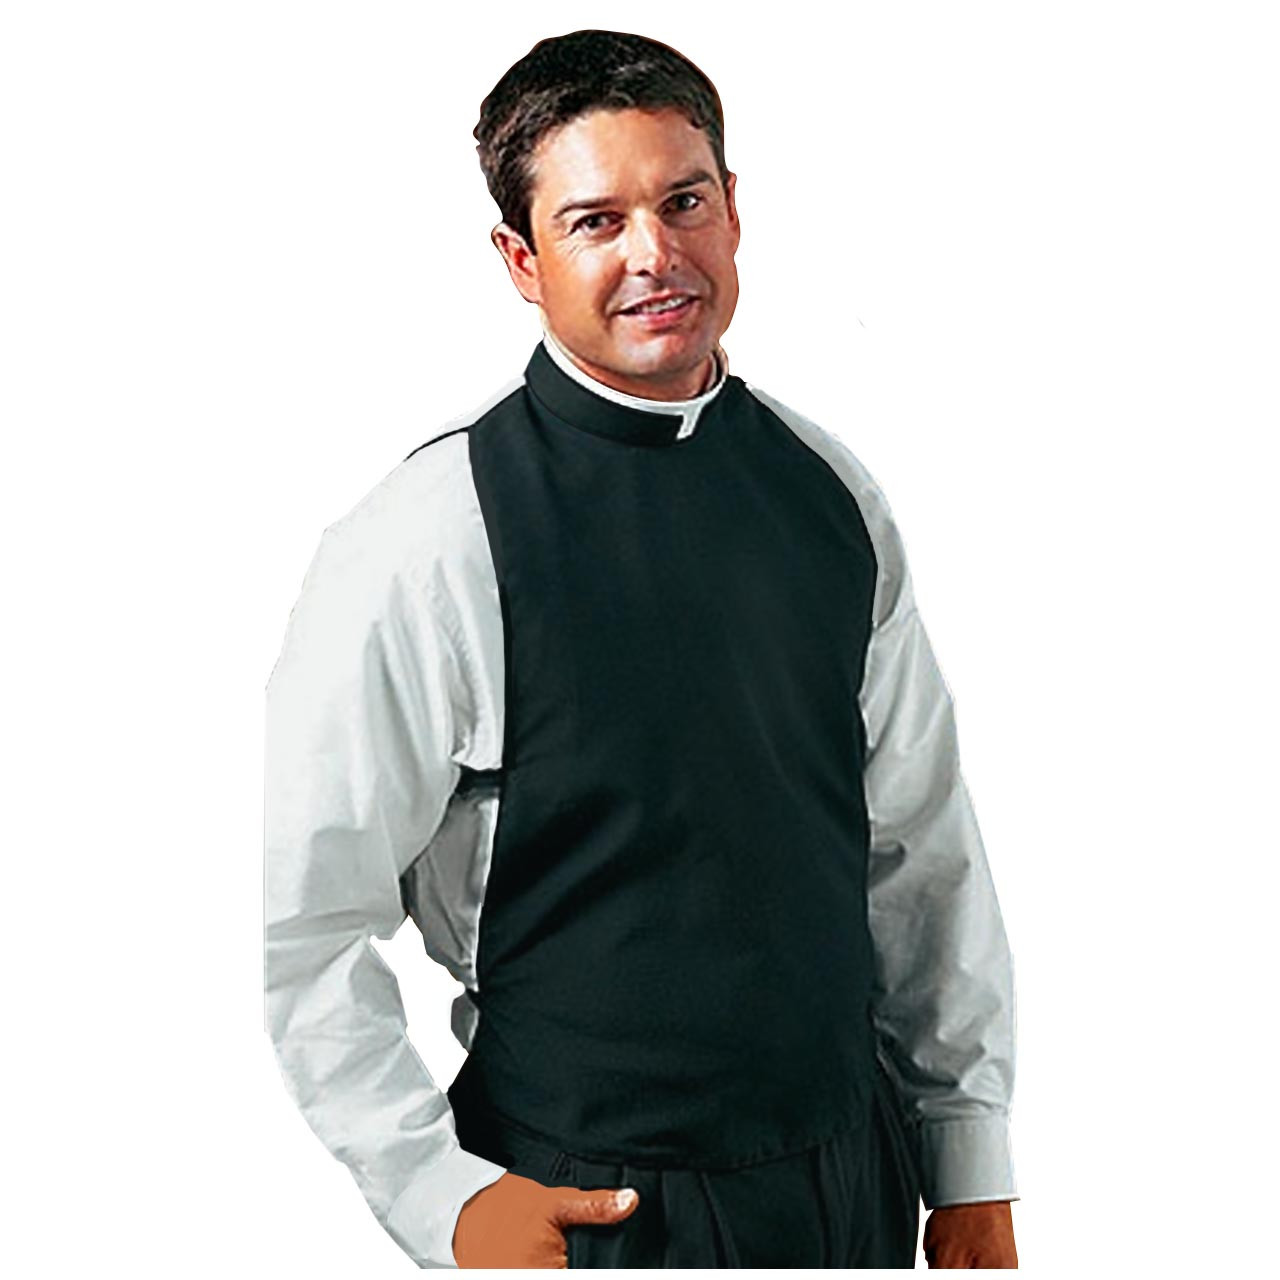 Clergy Shirtfront